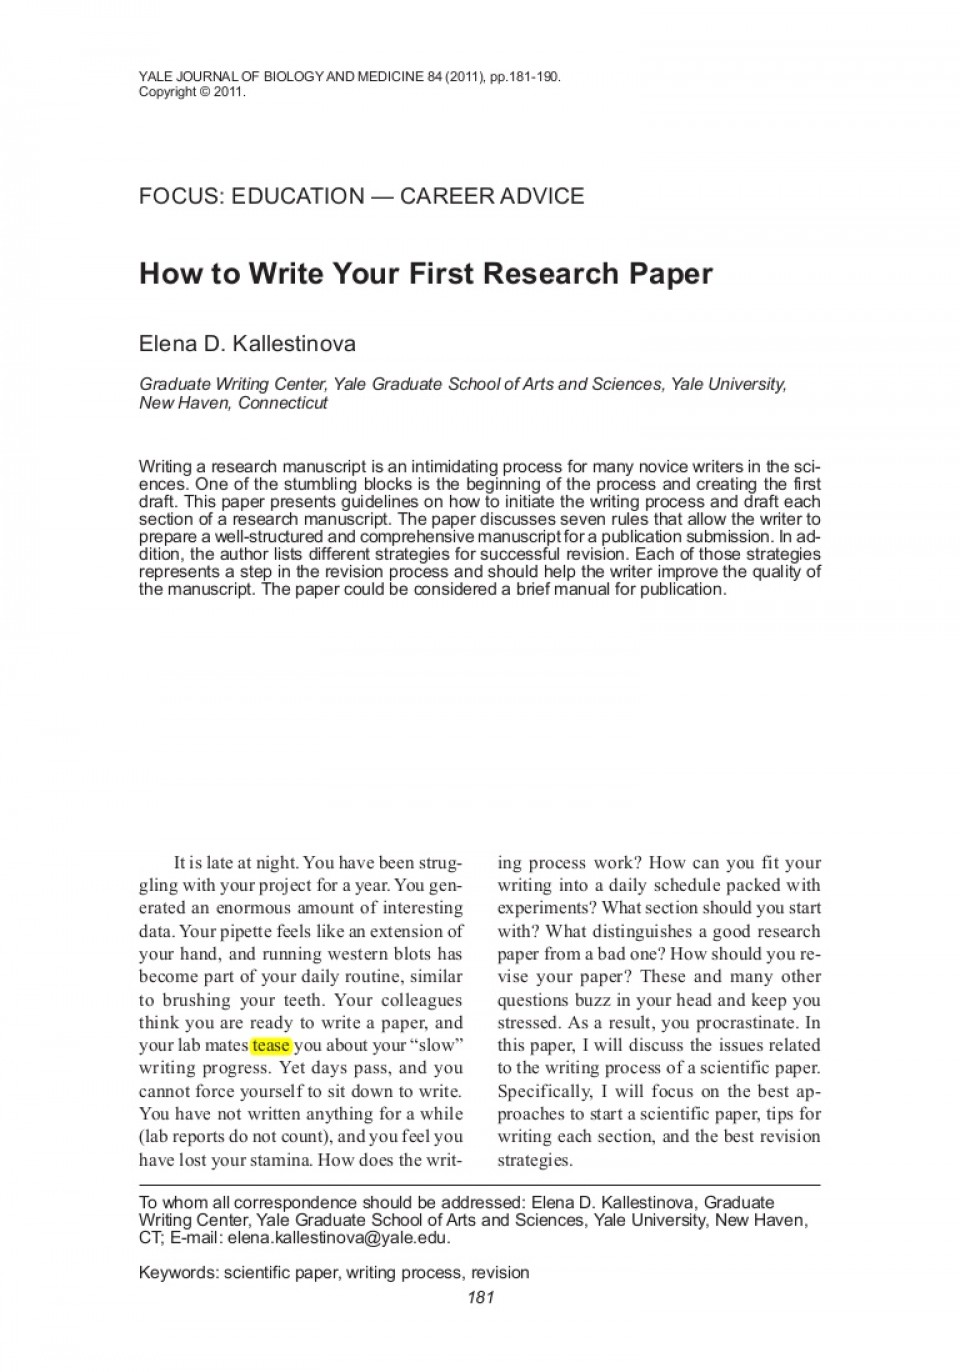 008 Research Paper How To Write Papers Howtowriteyourfirstresearchpaper Lva1 App6891 Thumbnail Outstanding A Proposal In Apa Format Do I Conclusion For Outline 960